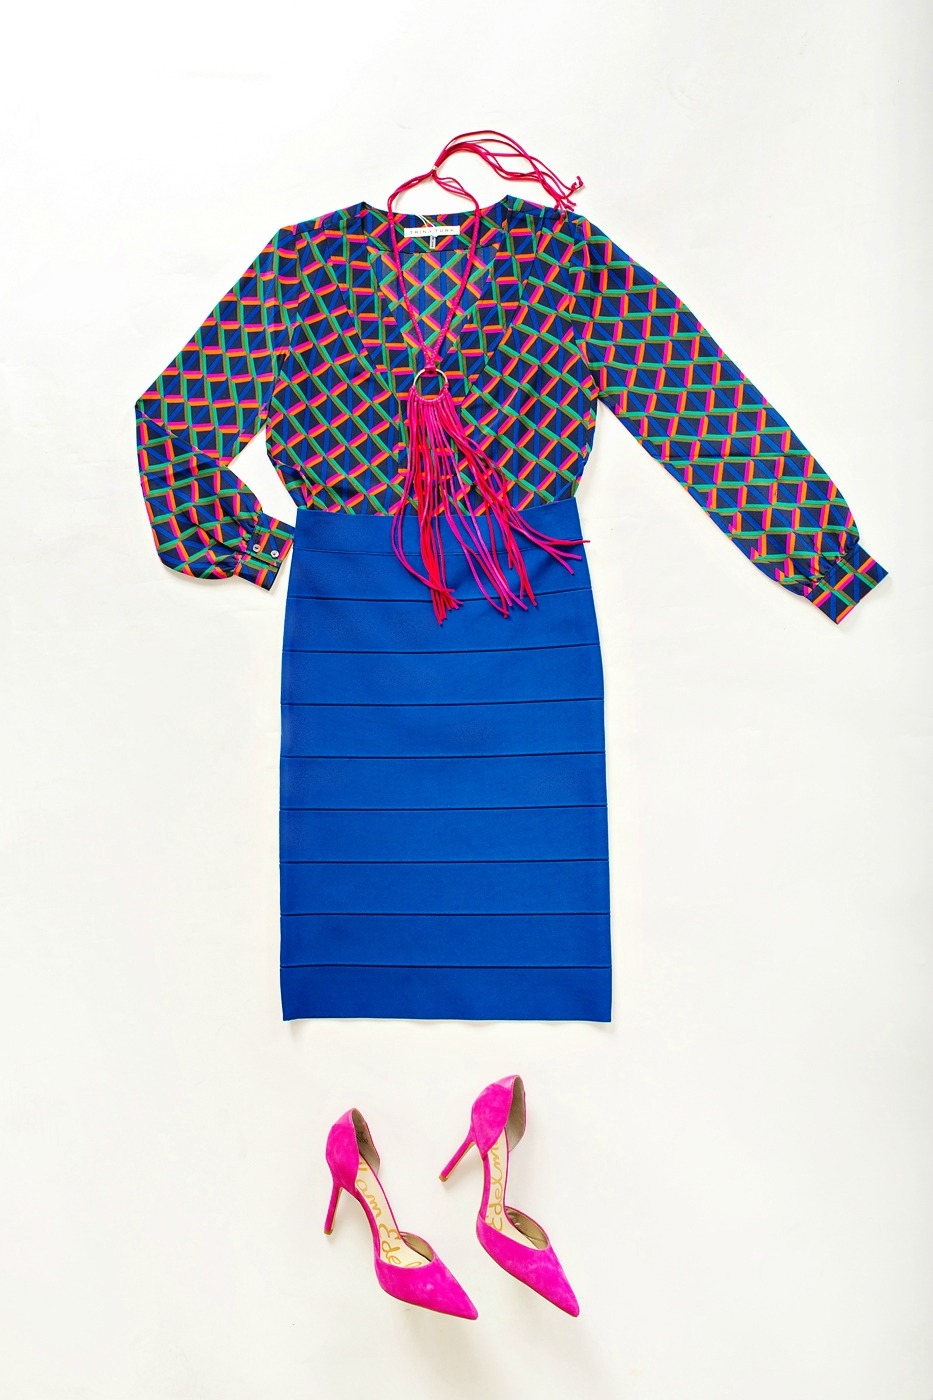 Cobalt BCBG bandage skirt, Trina Turk blouse and fuchsia statement necklace